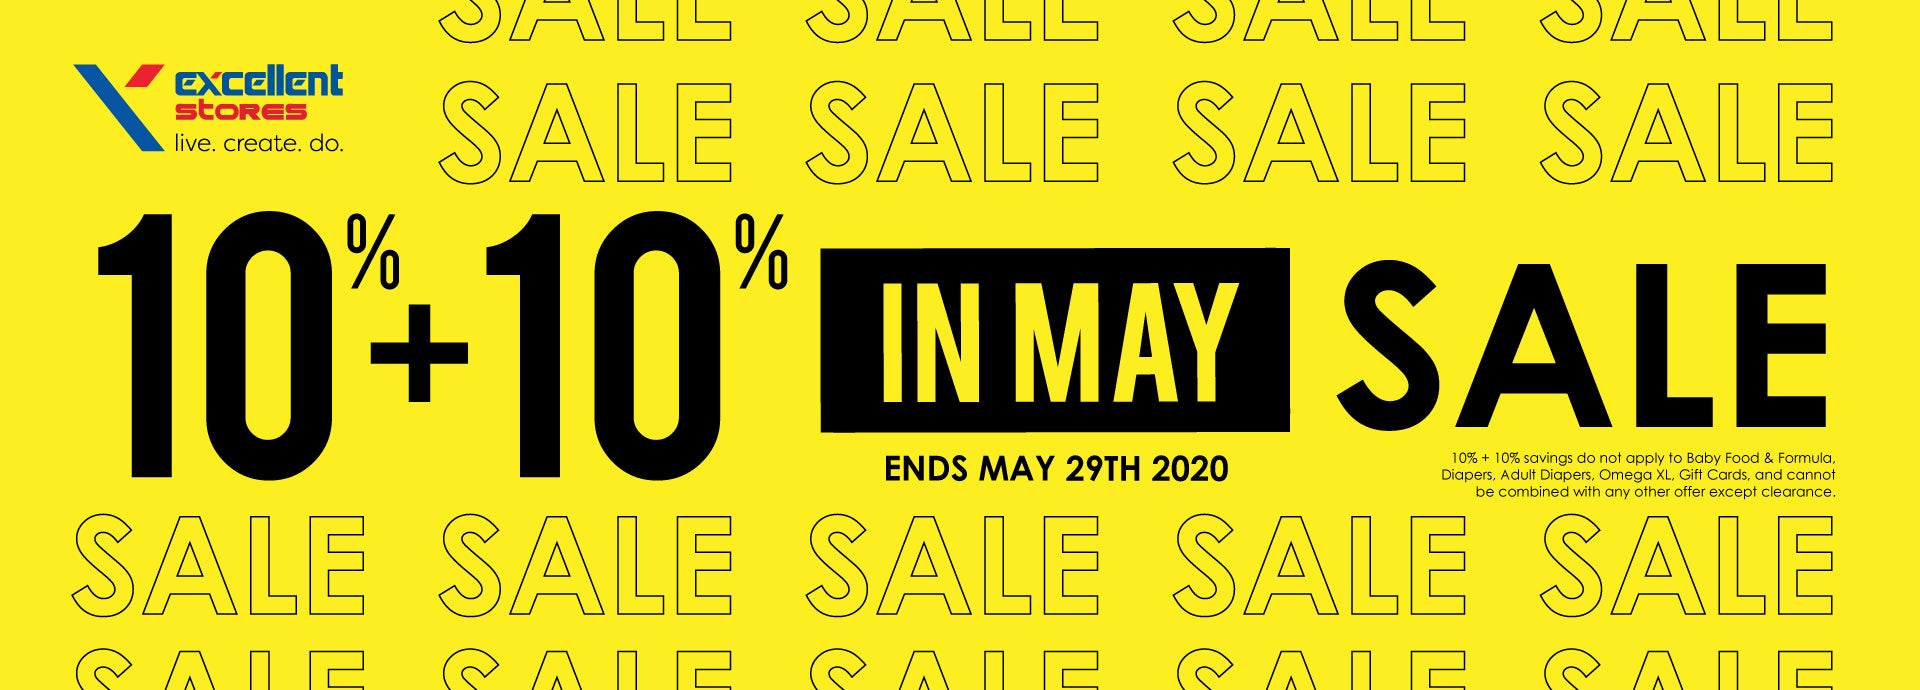 10+`10 Sale in May